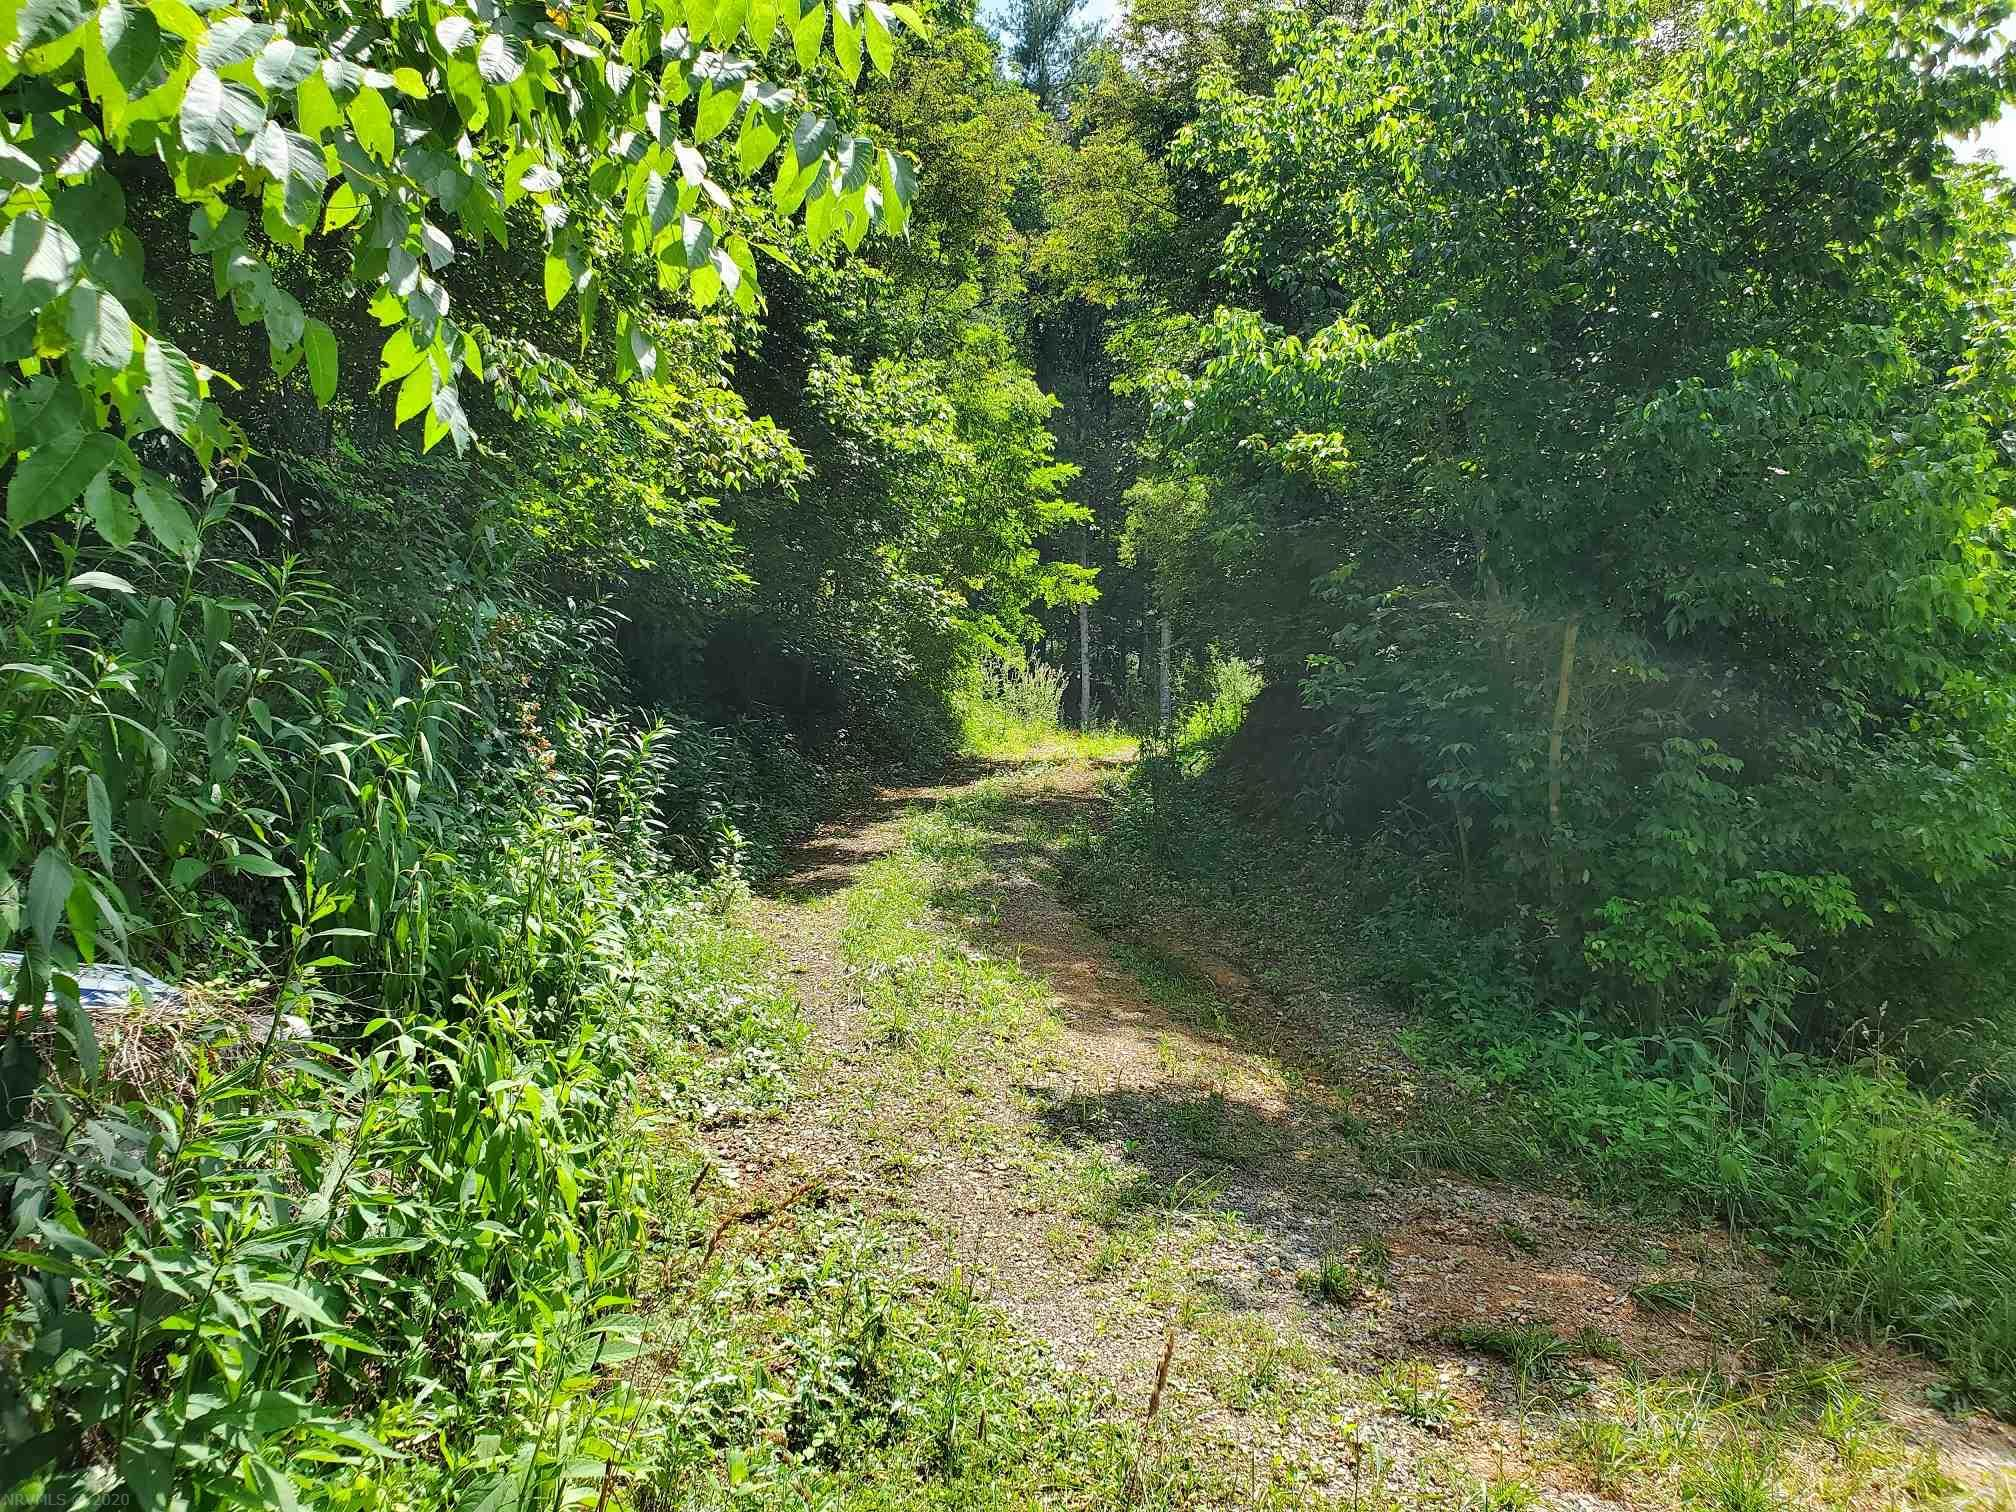 This lot offers the new owner all the privacy that they could want!  Just minutes from I-81 and downtown Christiansburg.  There are beautiful view from the land and it is perfect for the owner that wants to be out of the way yet convenient to all the amenities that are available.  This 7+ acre lot is definitely worth the look for someone that wants to build or to have a weekend get a way.